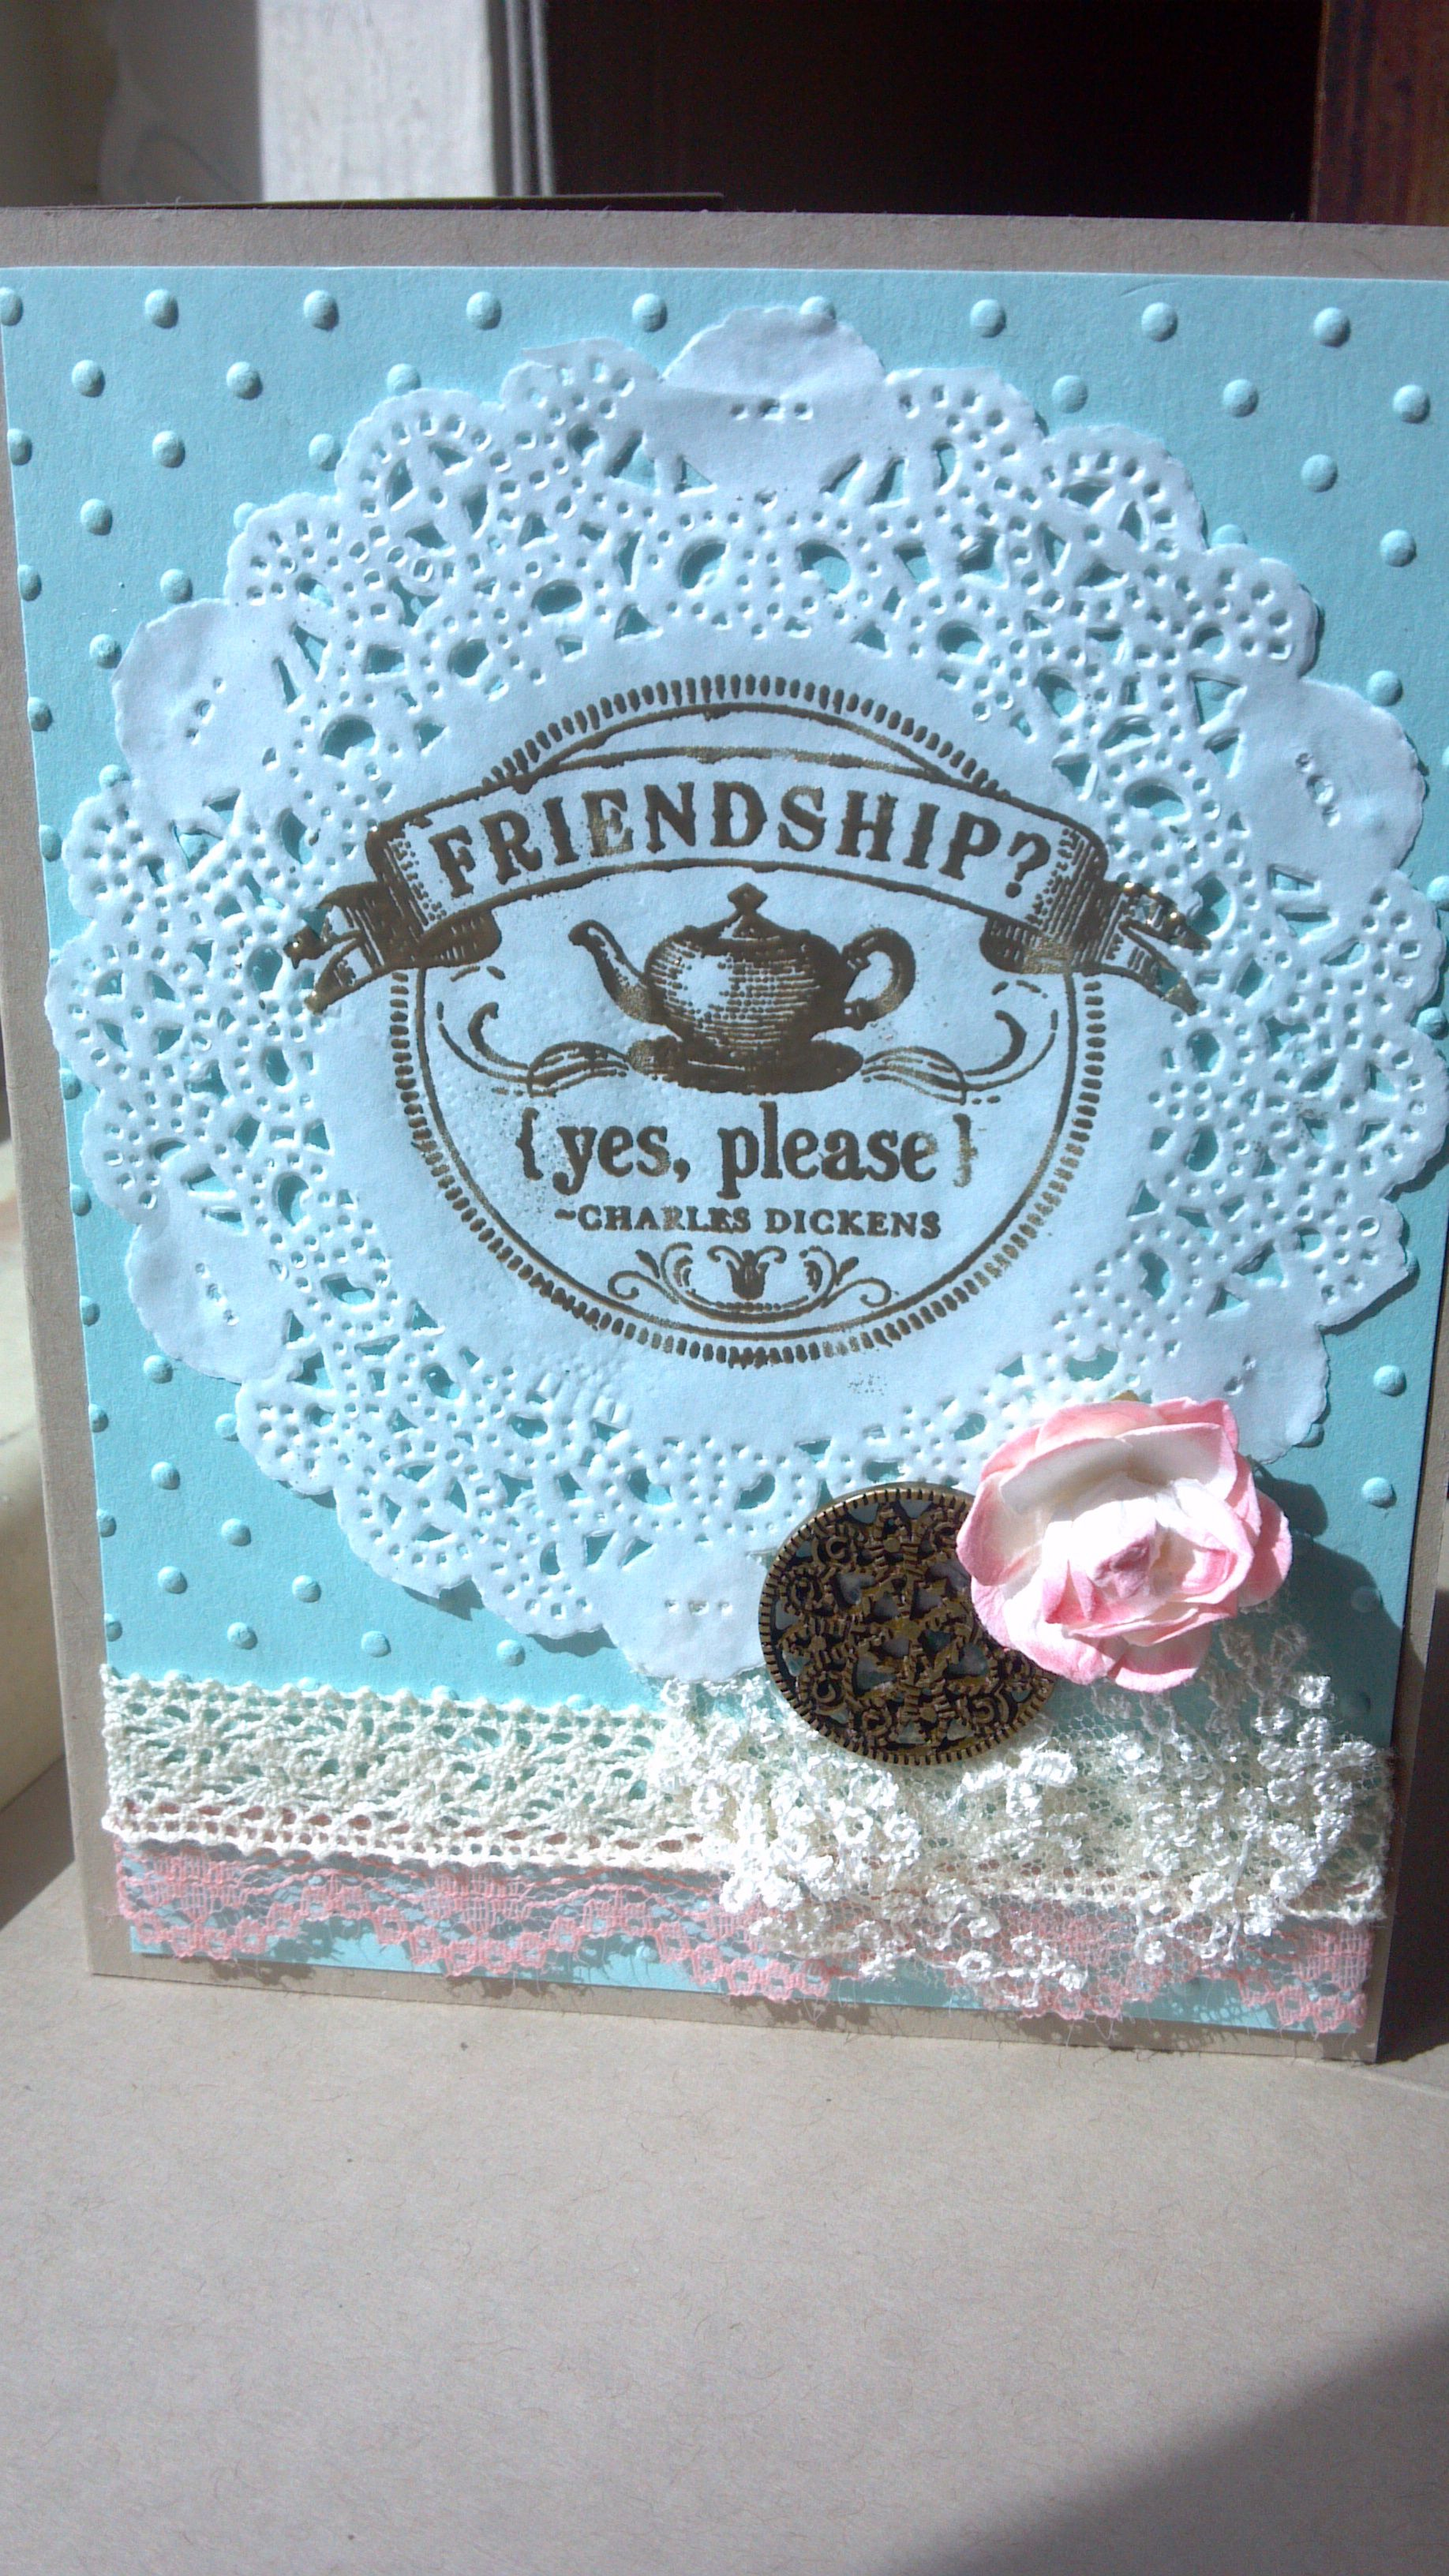 Stampin'Up Artisan Embellishments, Polka Dot Embossing background, White Tea Lace Doilies on Crumb Cake and Pool Party cardstock. Stamp is FROM MY HEART stamp set.